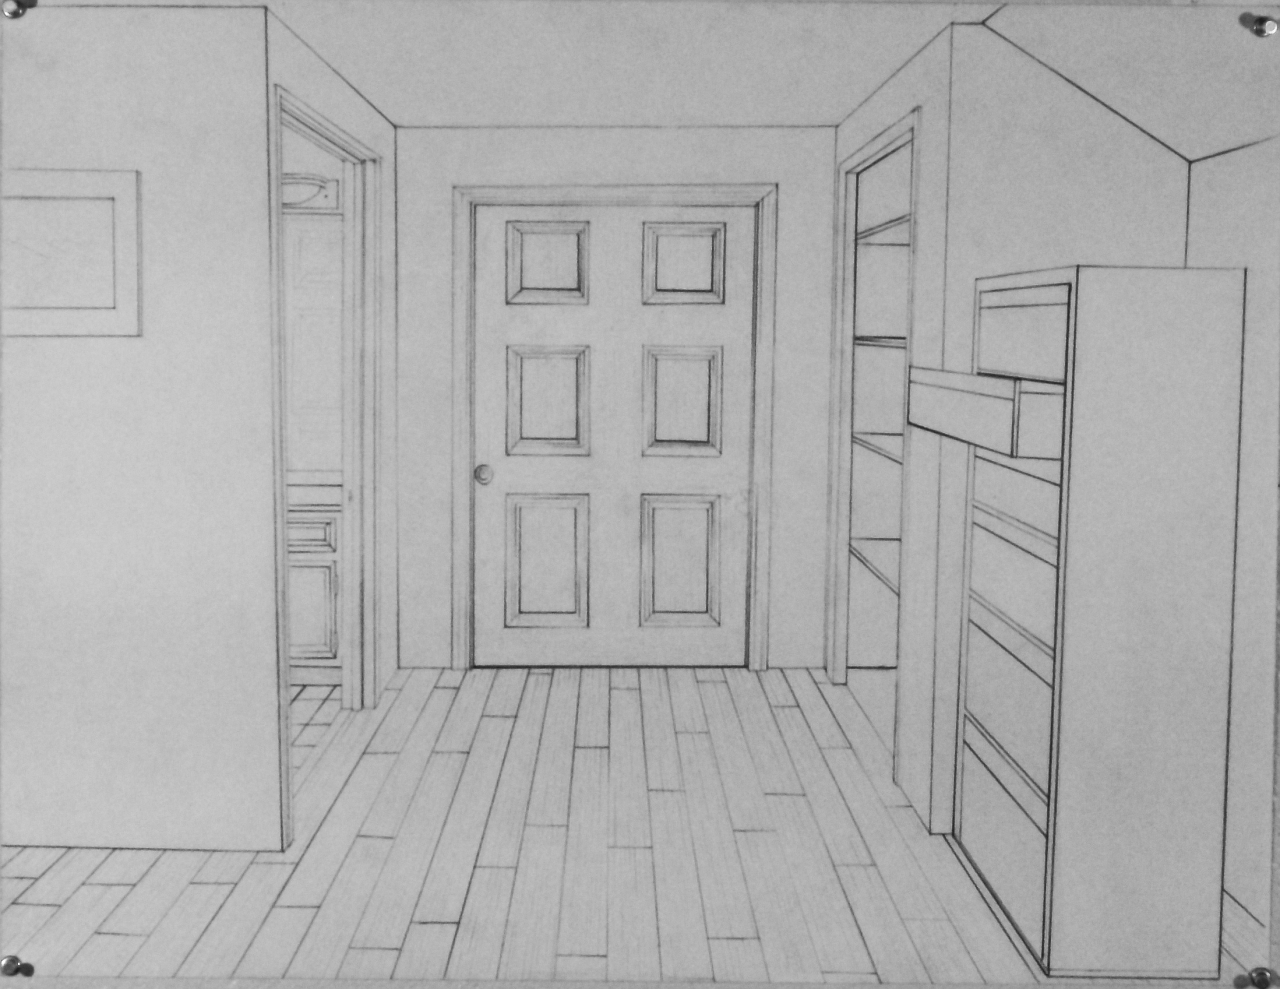 Homework Due 9 10 11 Interior One Point Perspective